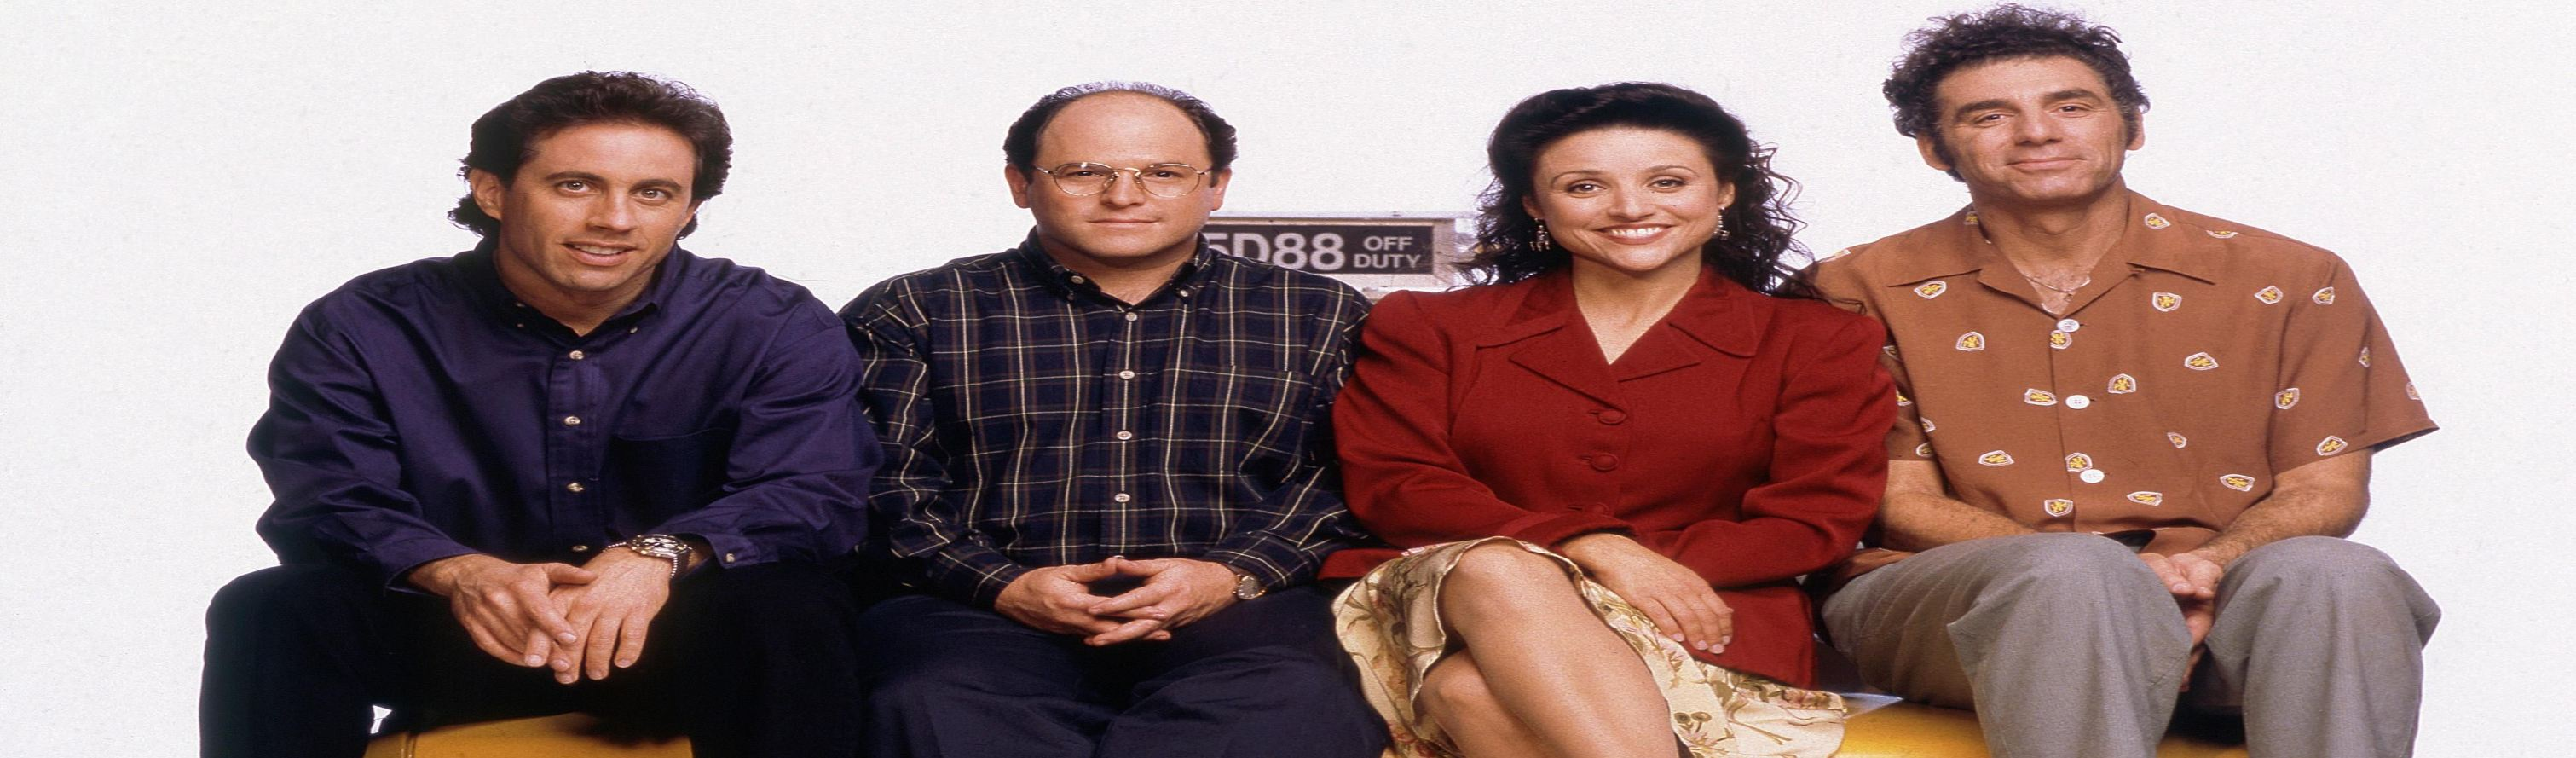 Seinfeld 4K Background